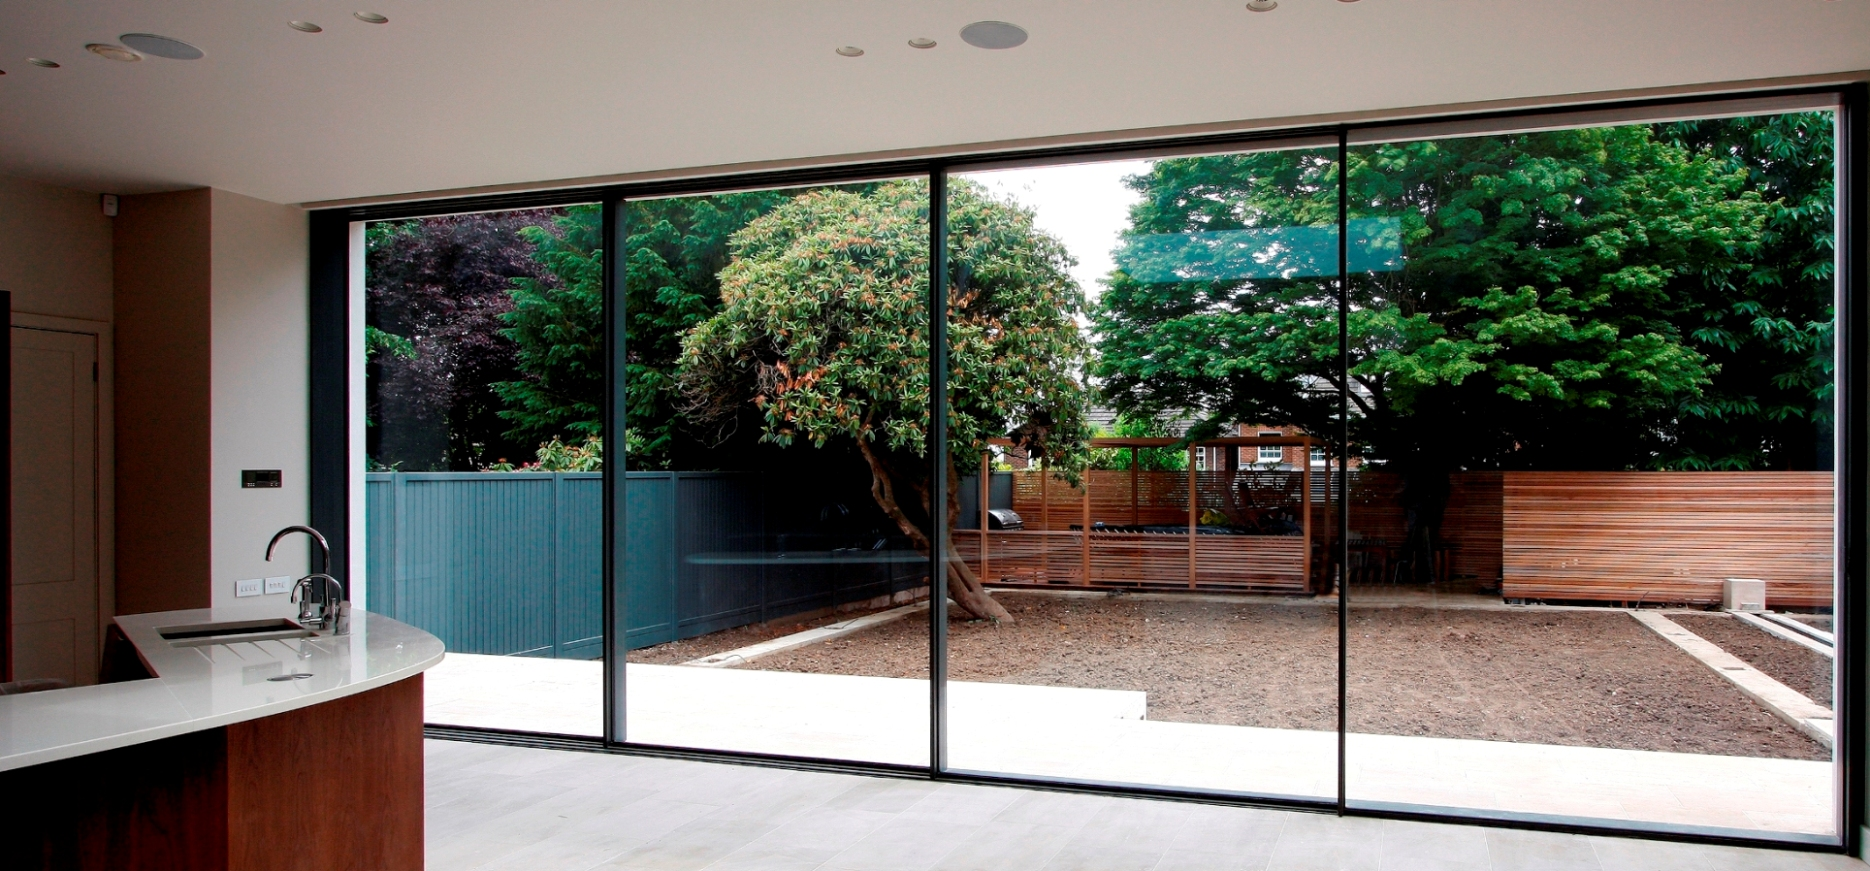 SLIDING GLASS DOORS EASY OPEN AND CLOSE